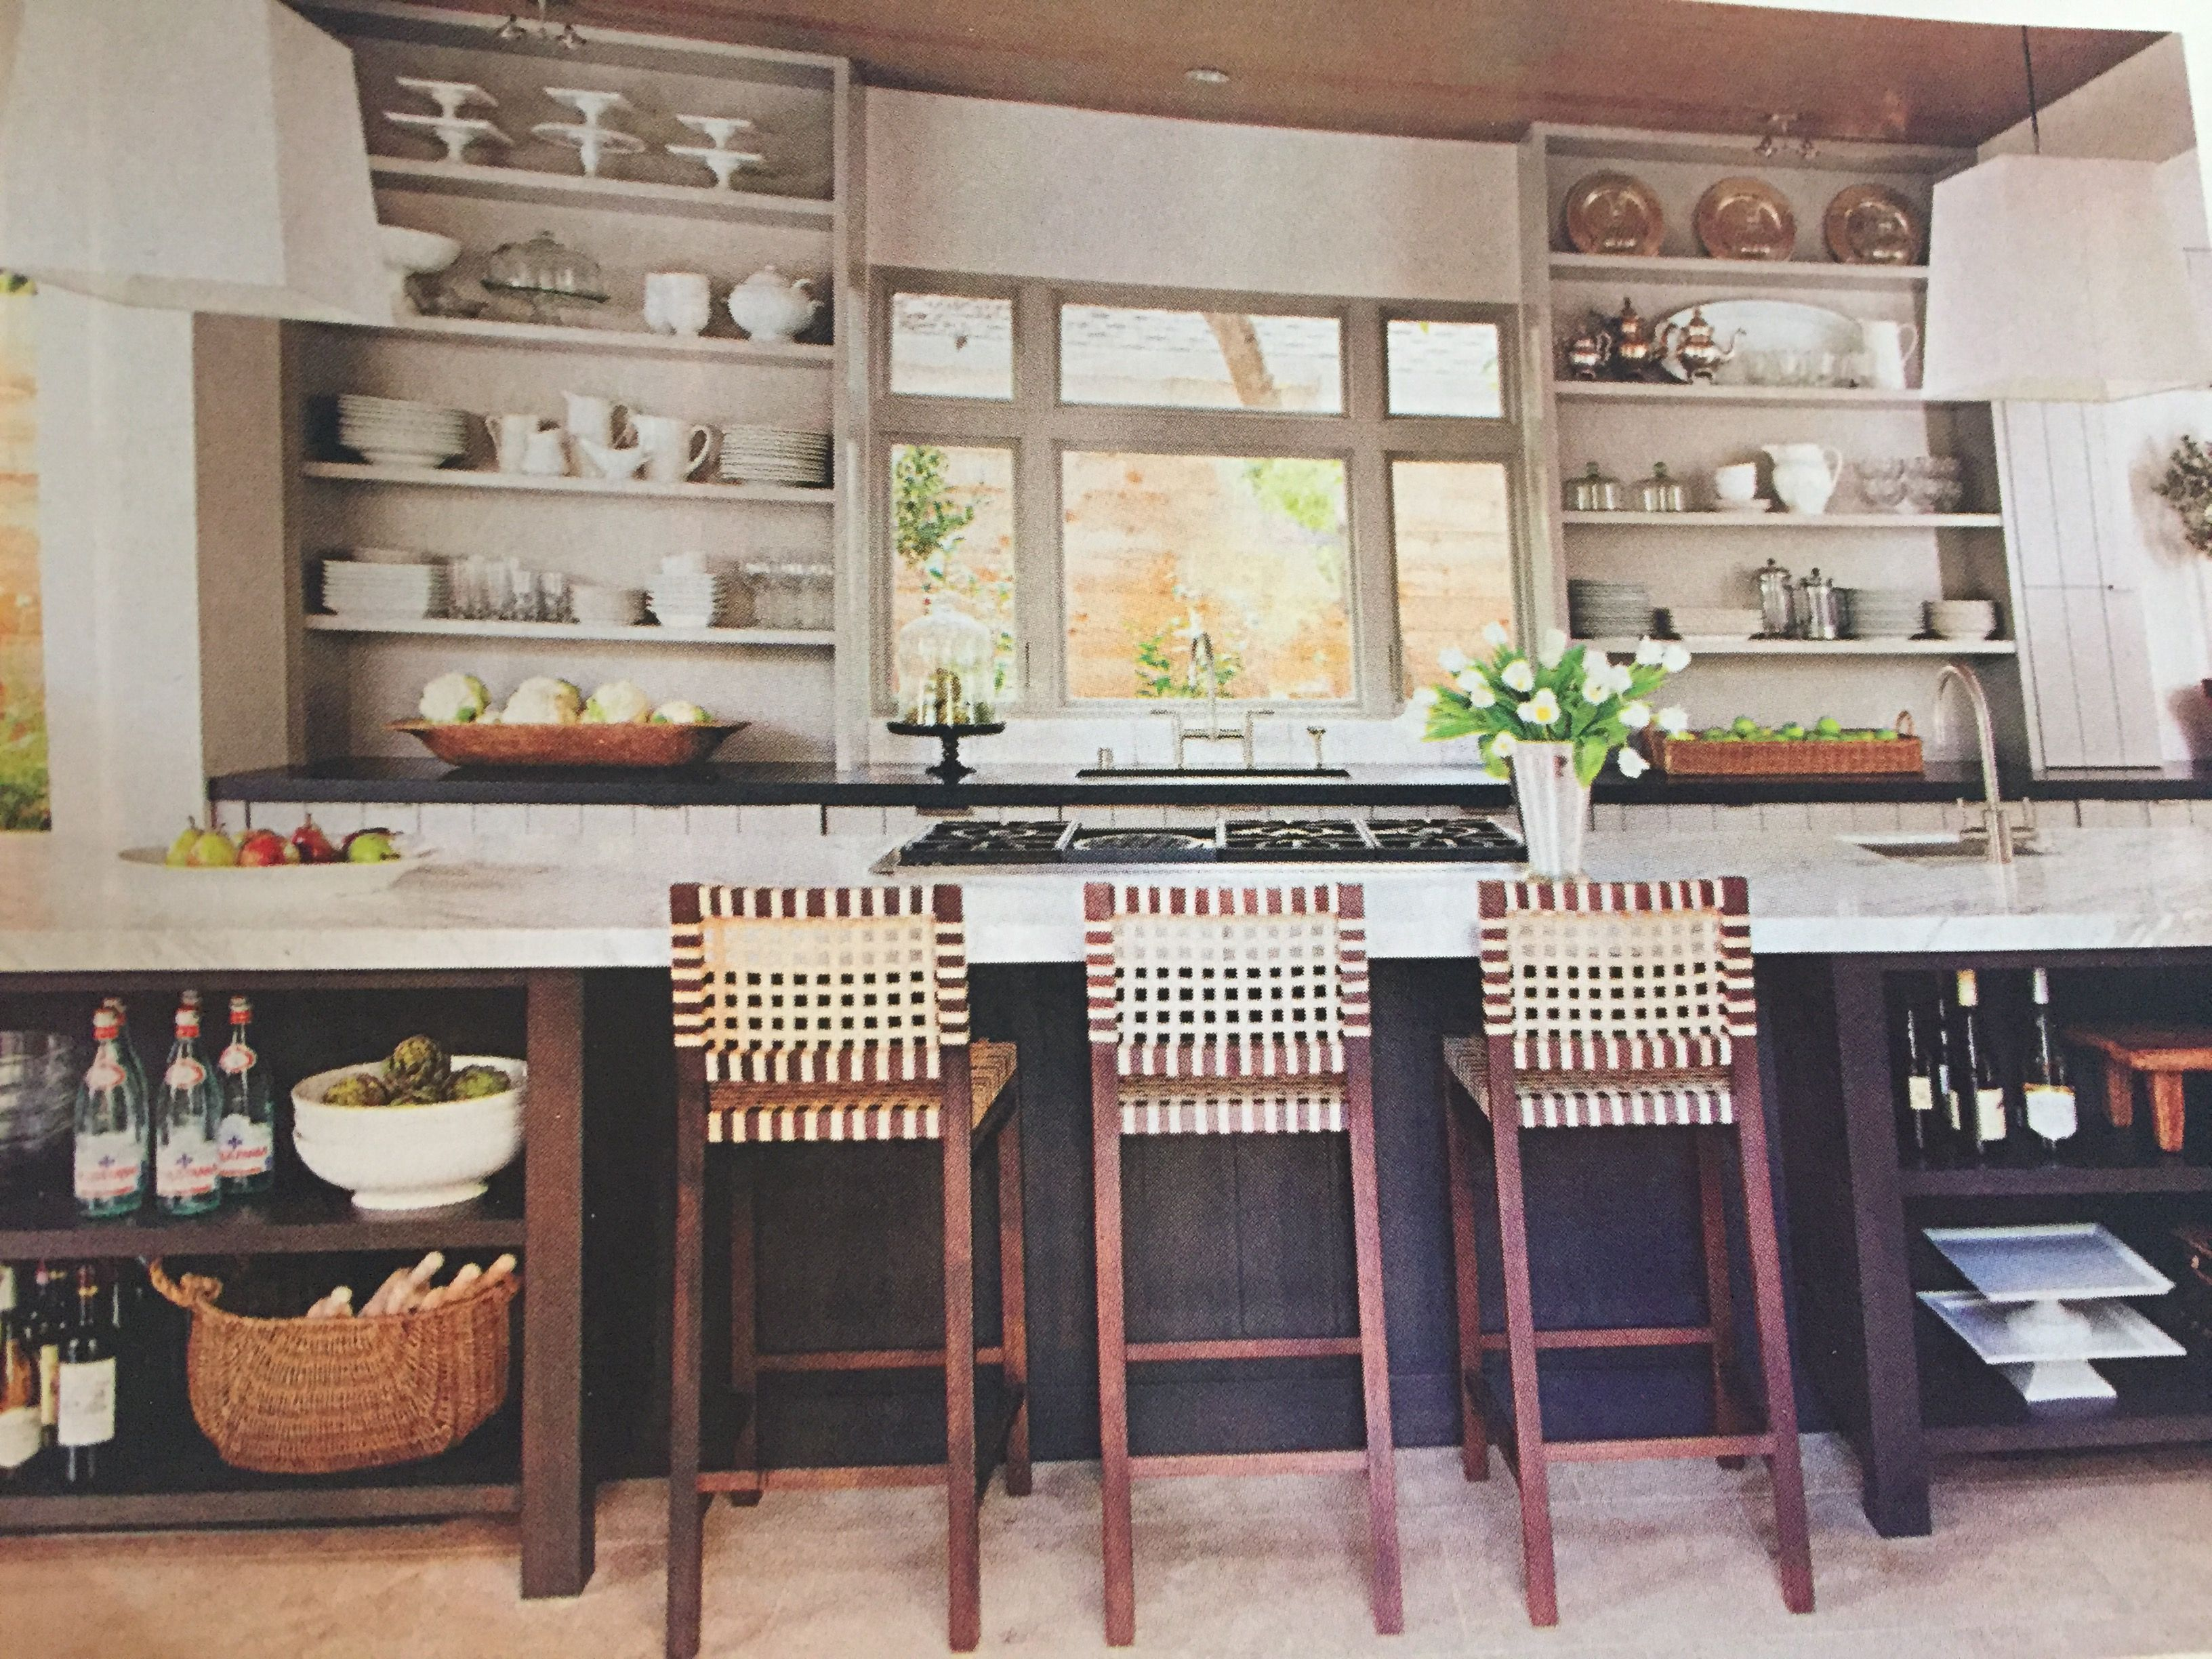 Kitchen Ideas Open Shelving Eat In Counter Kitchens Without Upper Cabinets Kitchen Design Home Kitchens